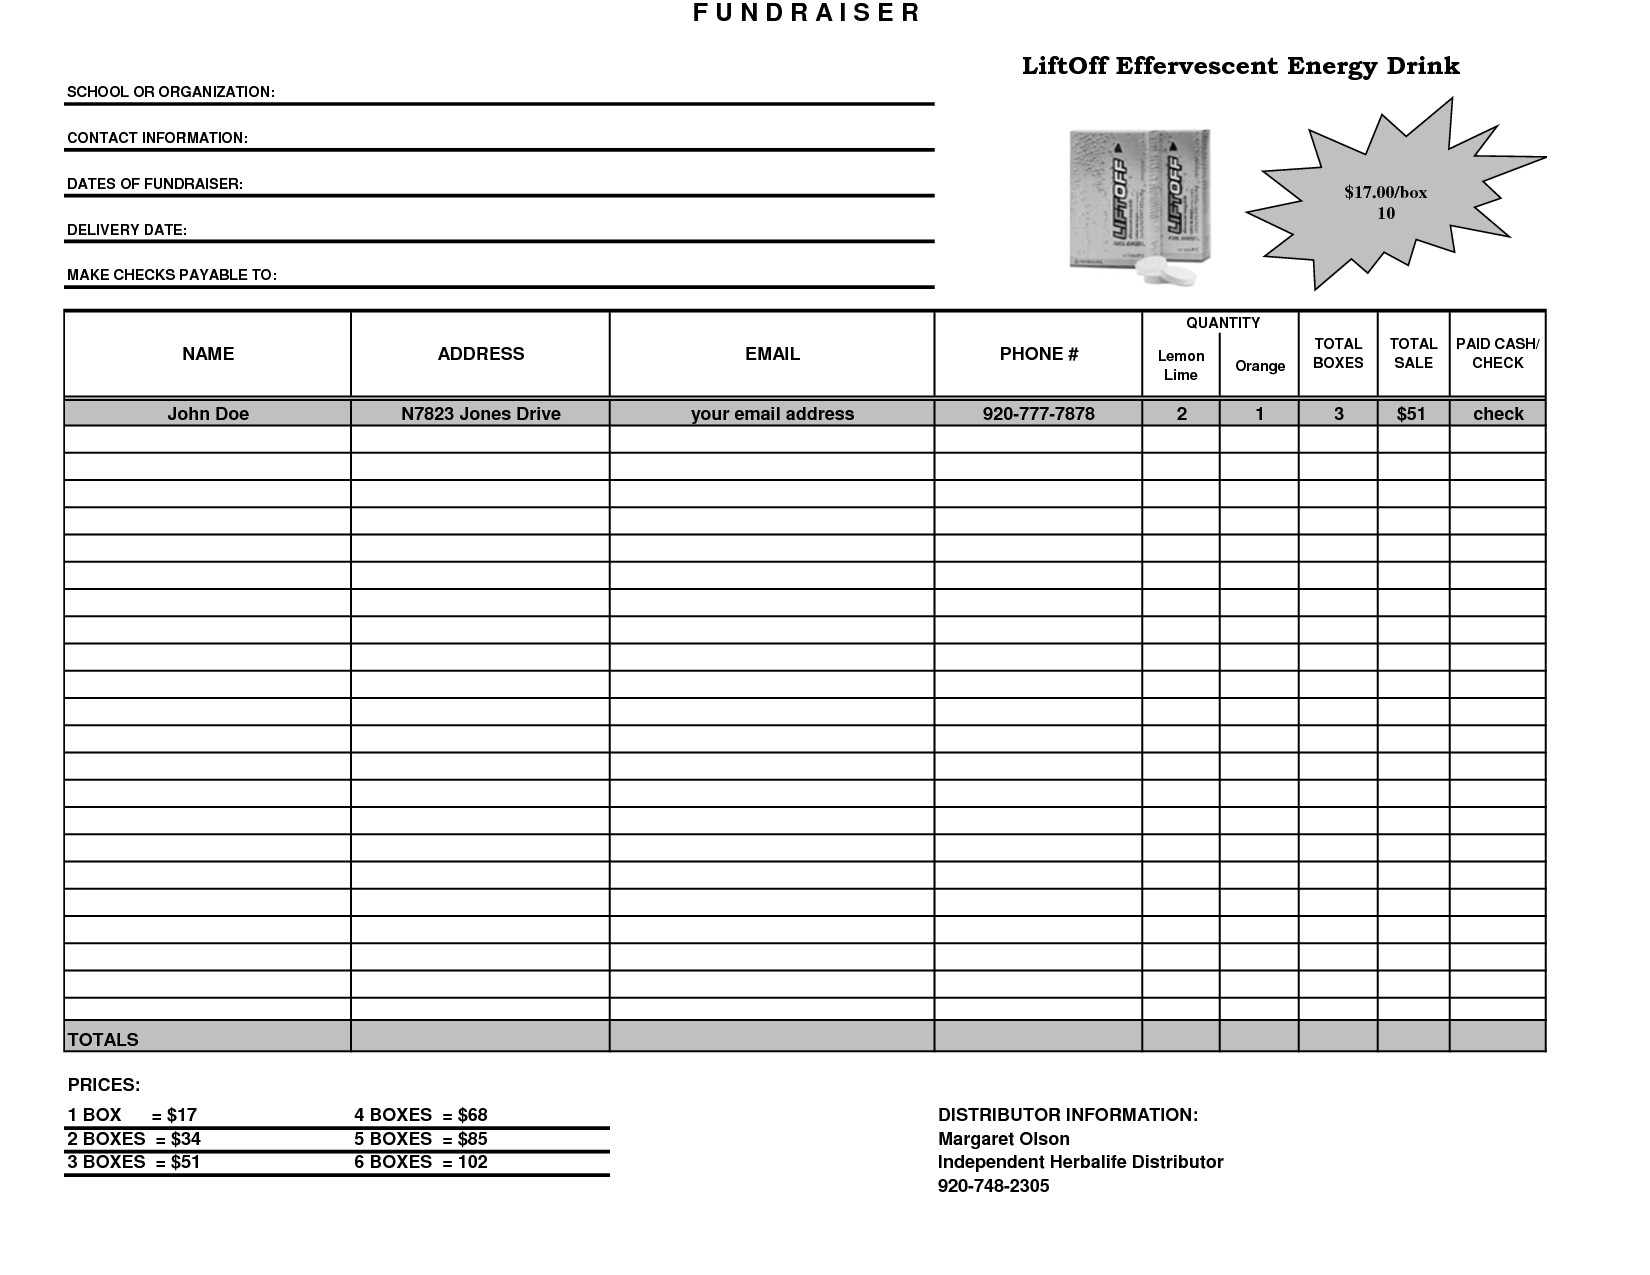 Fundraising Plan Template Excel Fundraiser Template Excel Fundraiser order form Template